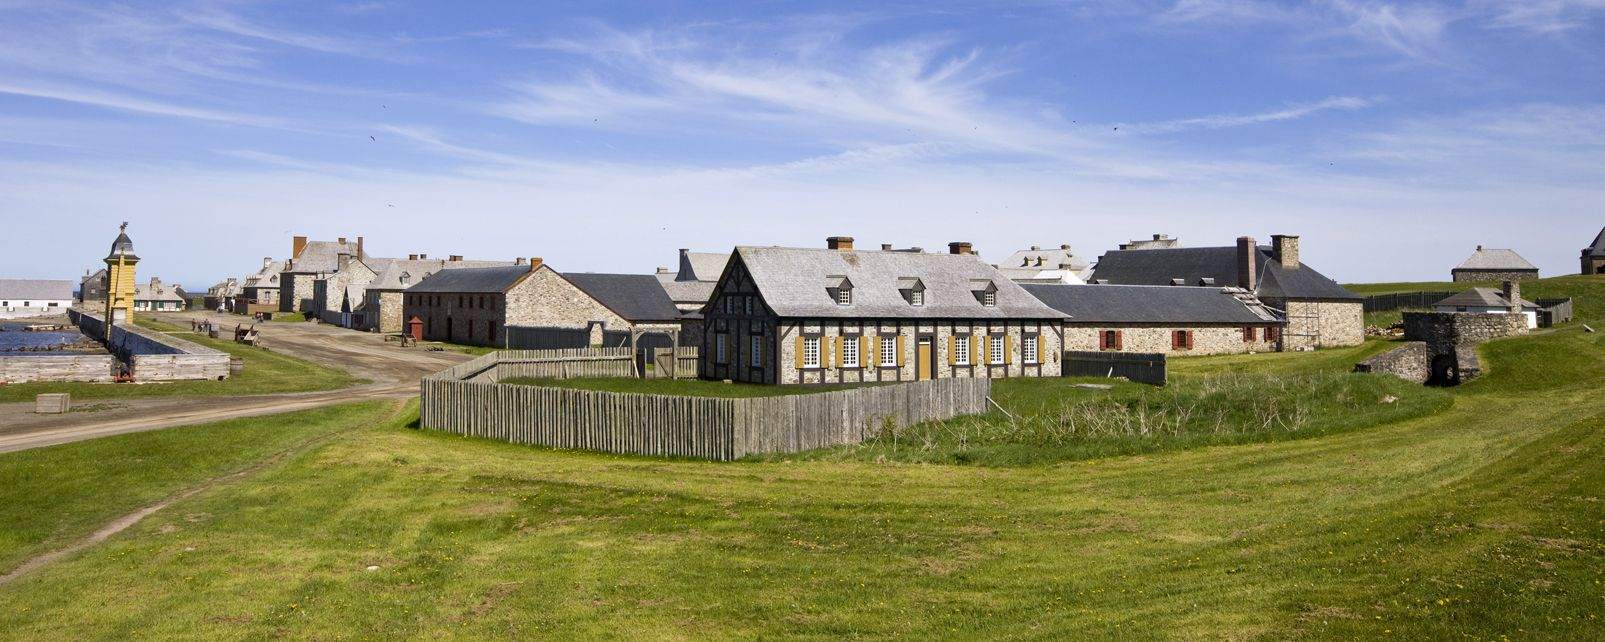 , The Fortress of Louisbourg, Monuments, New Scotland